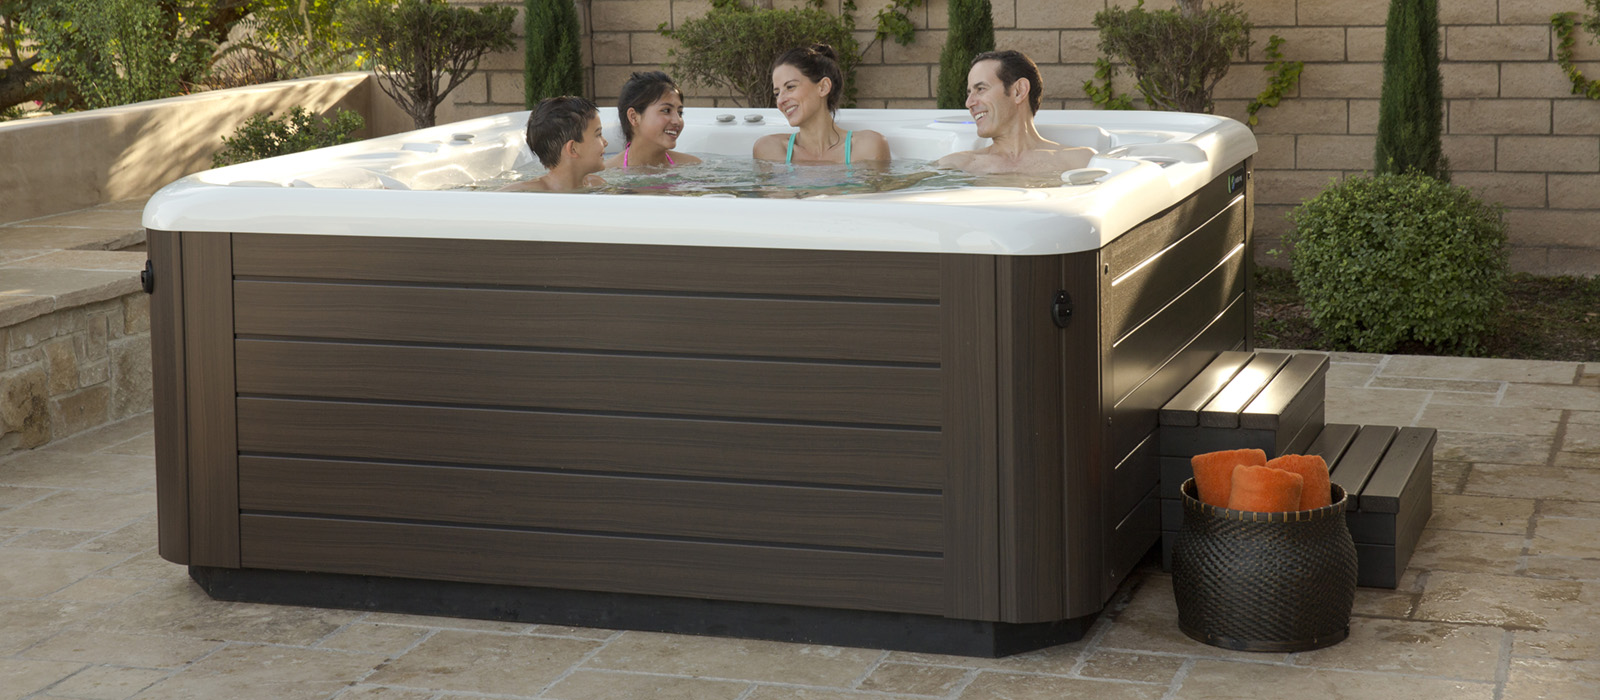 Everything you need to know about buying and installing a hot tub ...